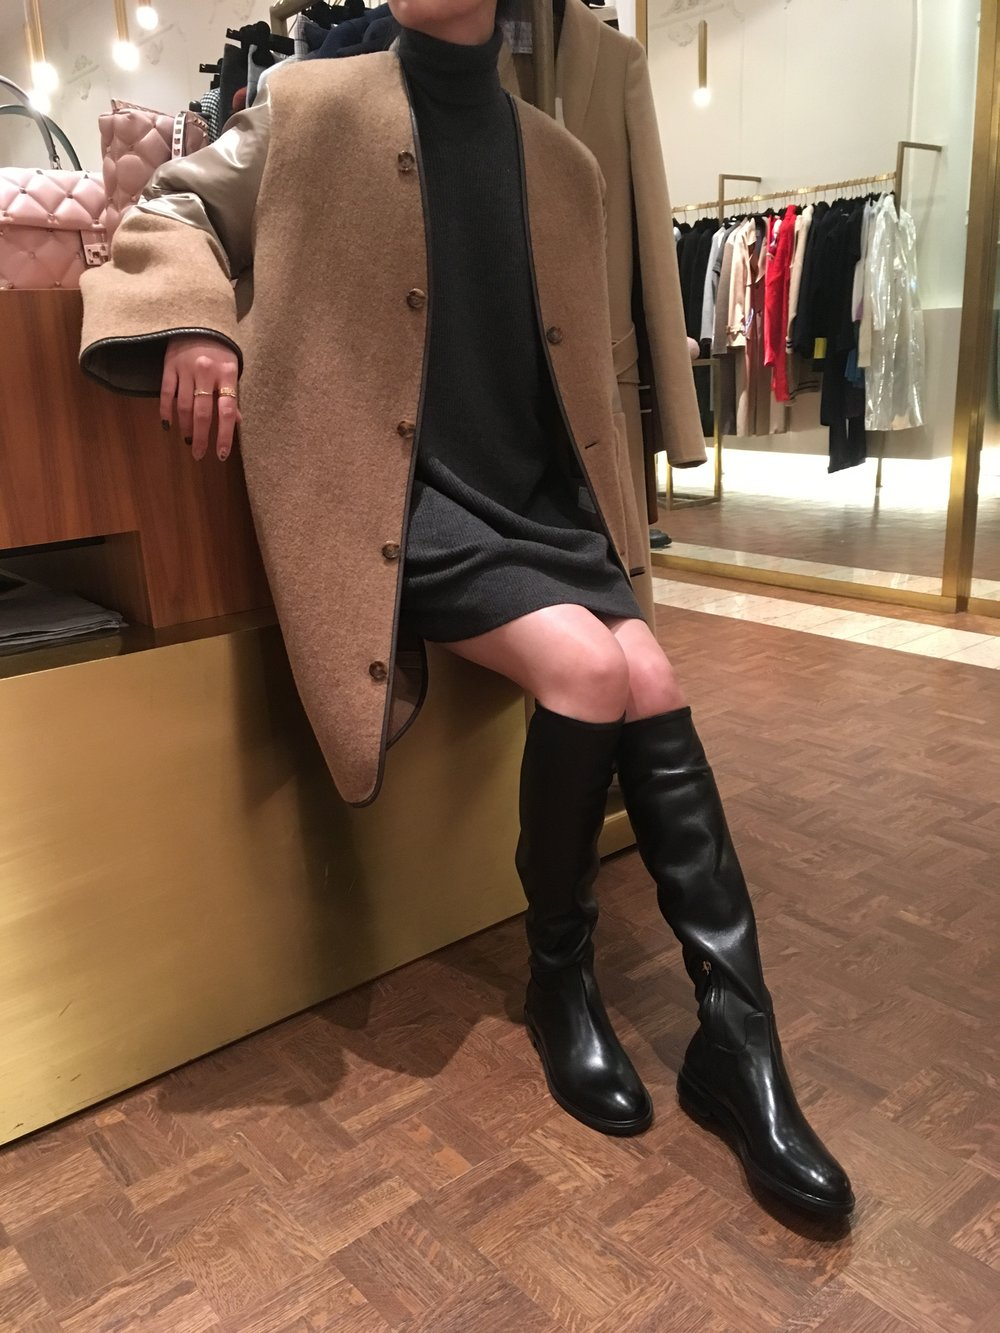 Outfit #2: Maison Margiela Coat and sweater dress with Valentino boots.